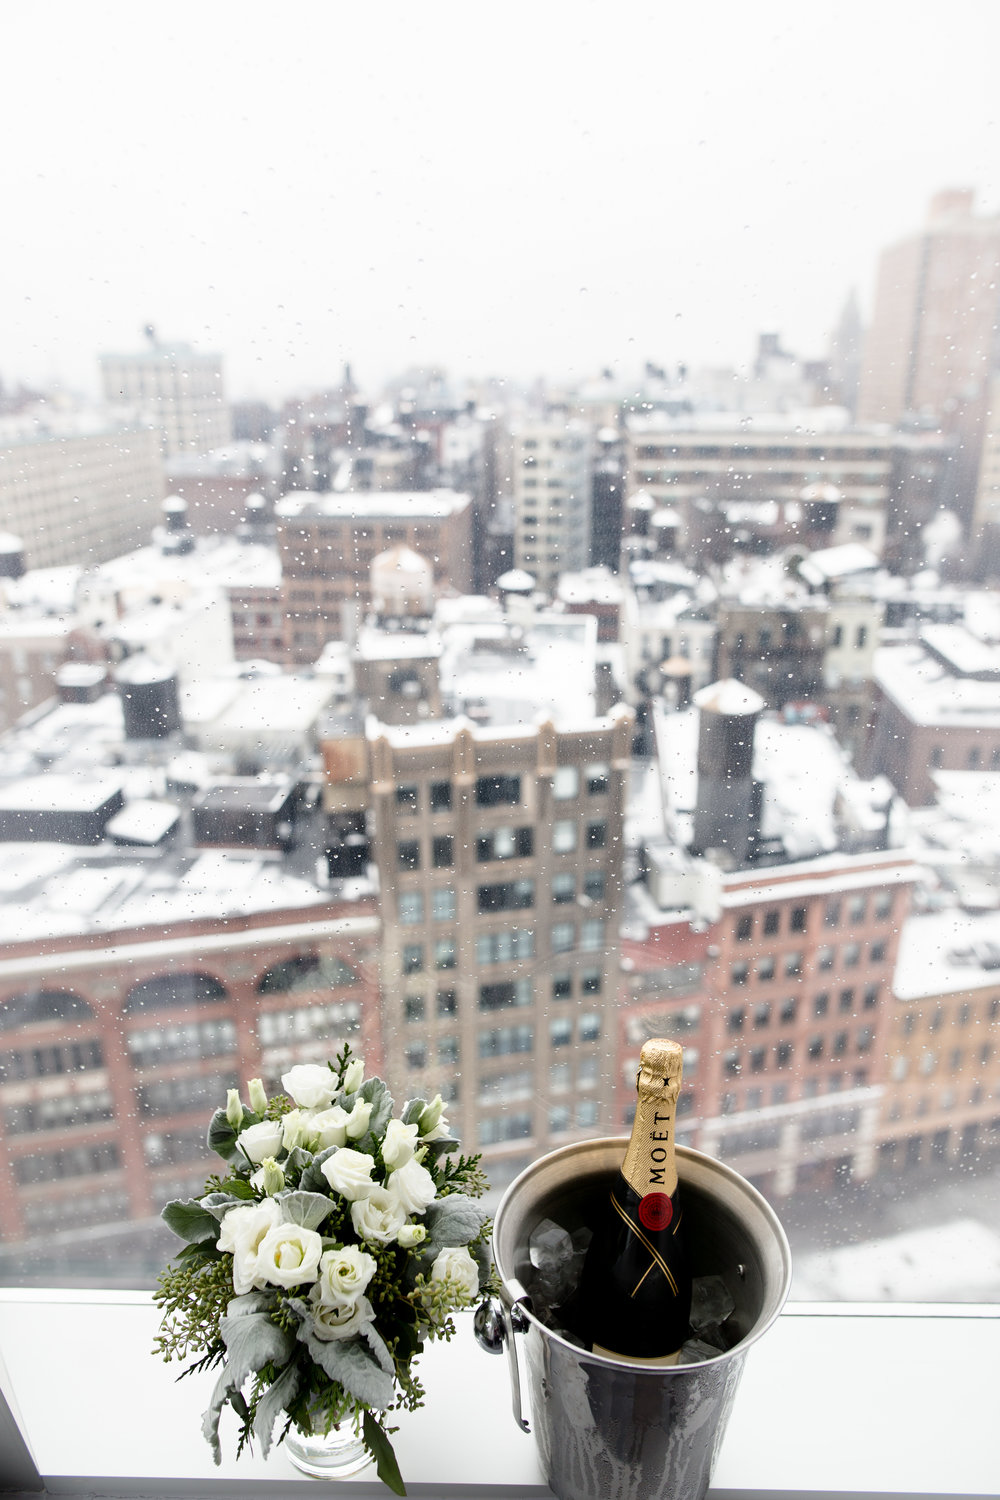 My brother got married in the greatest city on earth just before Christmas. There was just enough snow on the ground to make everything romantic, without delaying guests from getting to the lower east side locale on time. There's truly nothing like a winter white wedding in New York City.